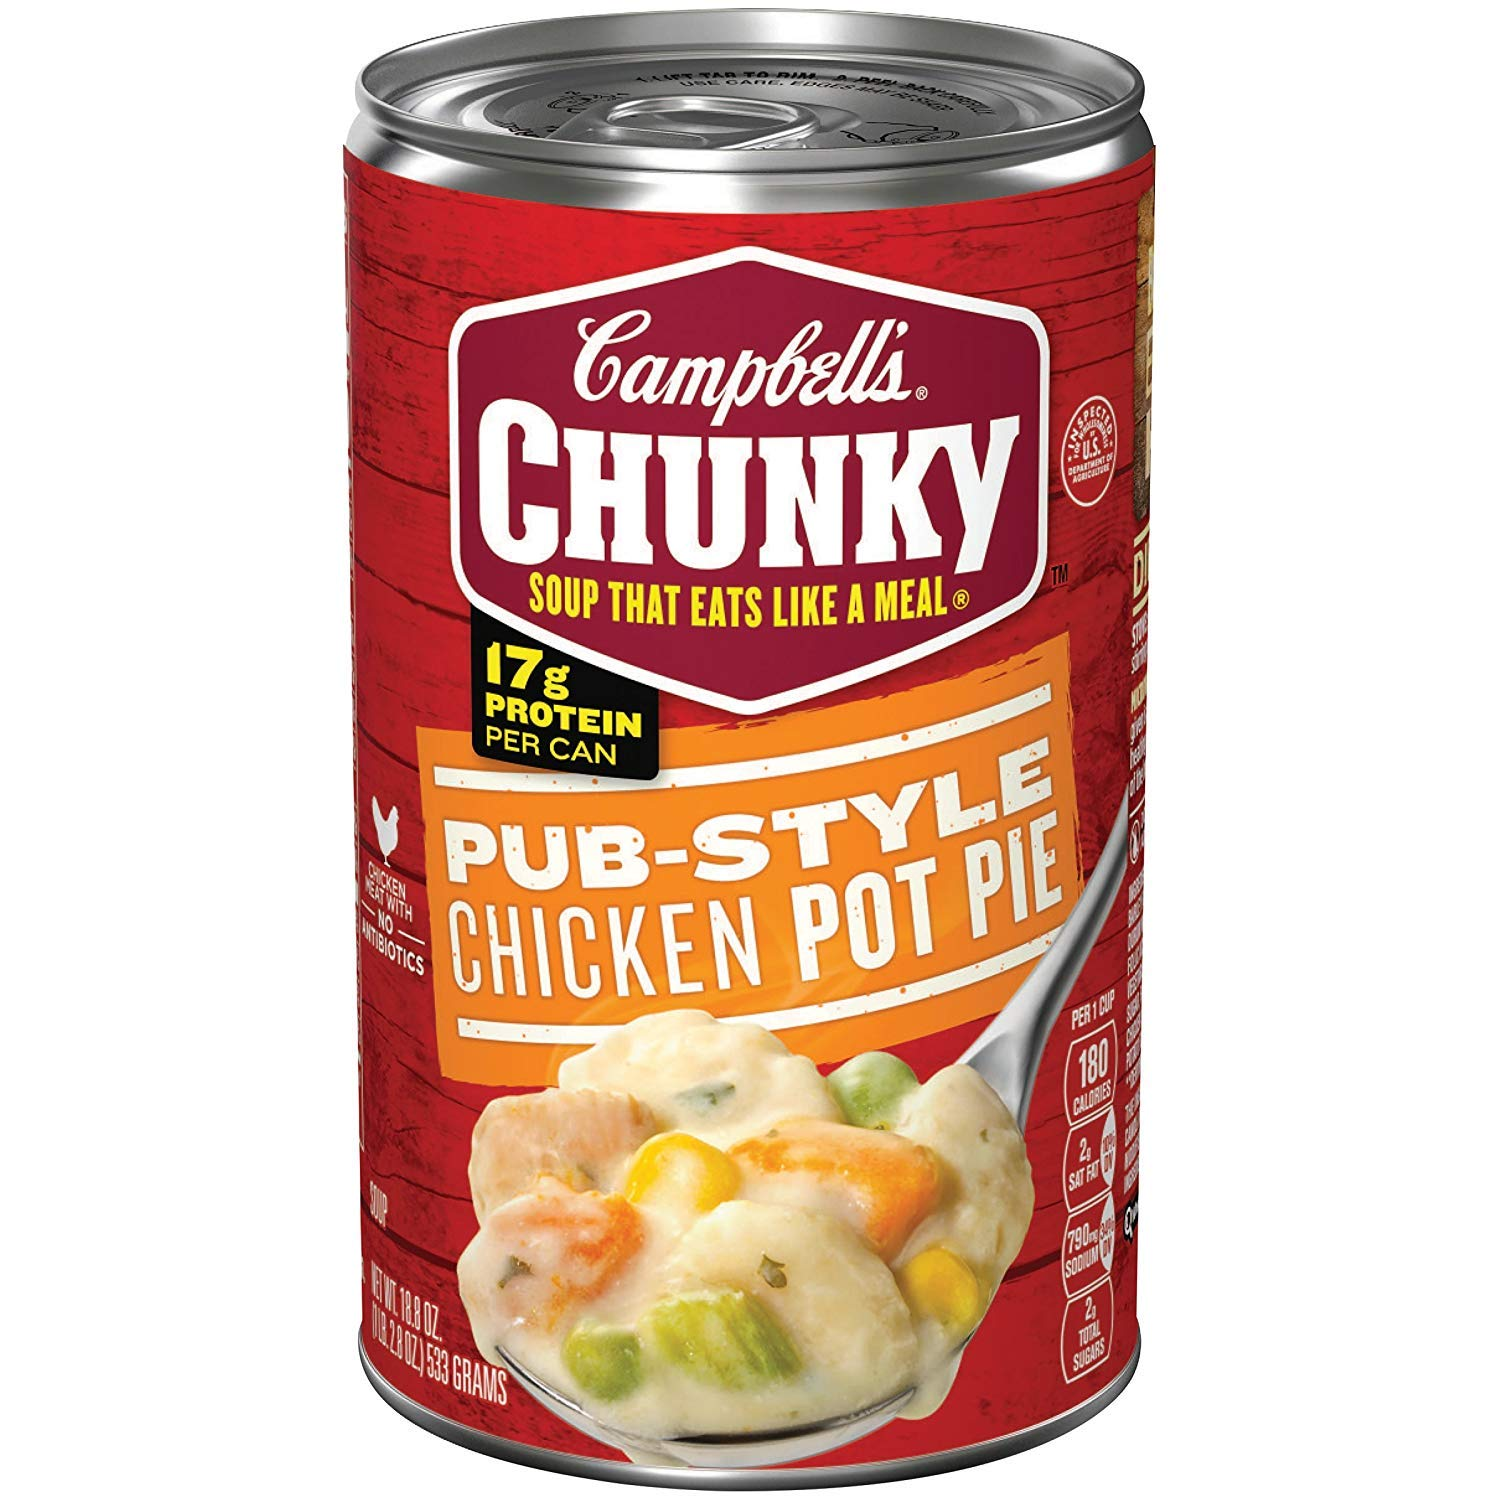 Campbell's Chunky Soup, Pub-Style Chicken Pot Pie Soup, 18.8 Ounce Can (12 Pack)